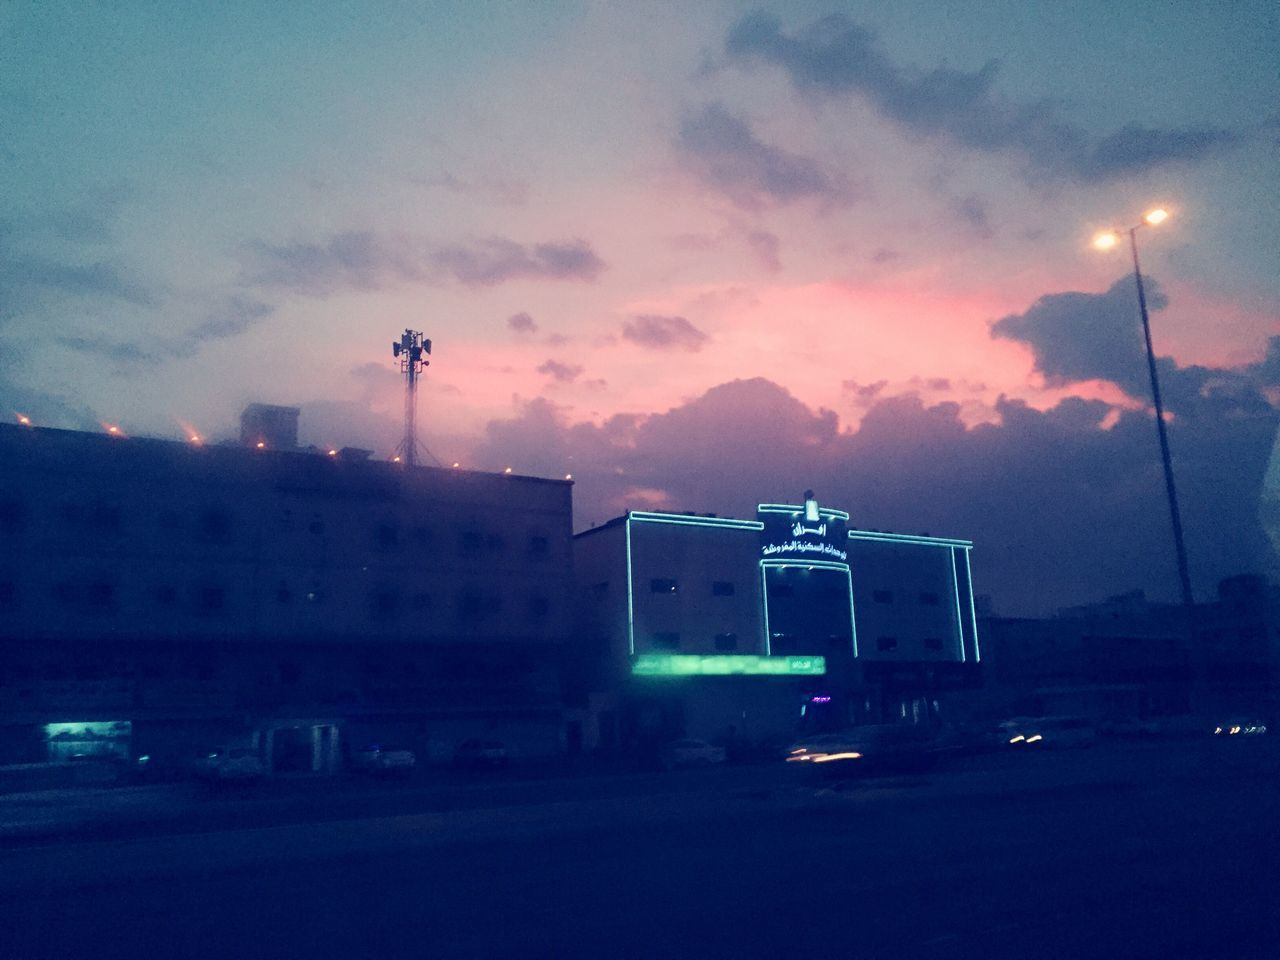 sky, cloud - sky, built structure, architecture, building exterior, illuminated, sunset, dusk, outdoors, no people, night, road, city, nature